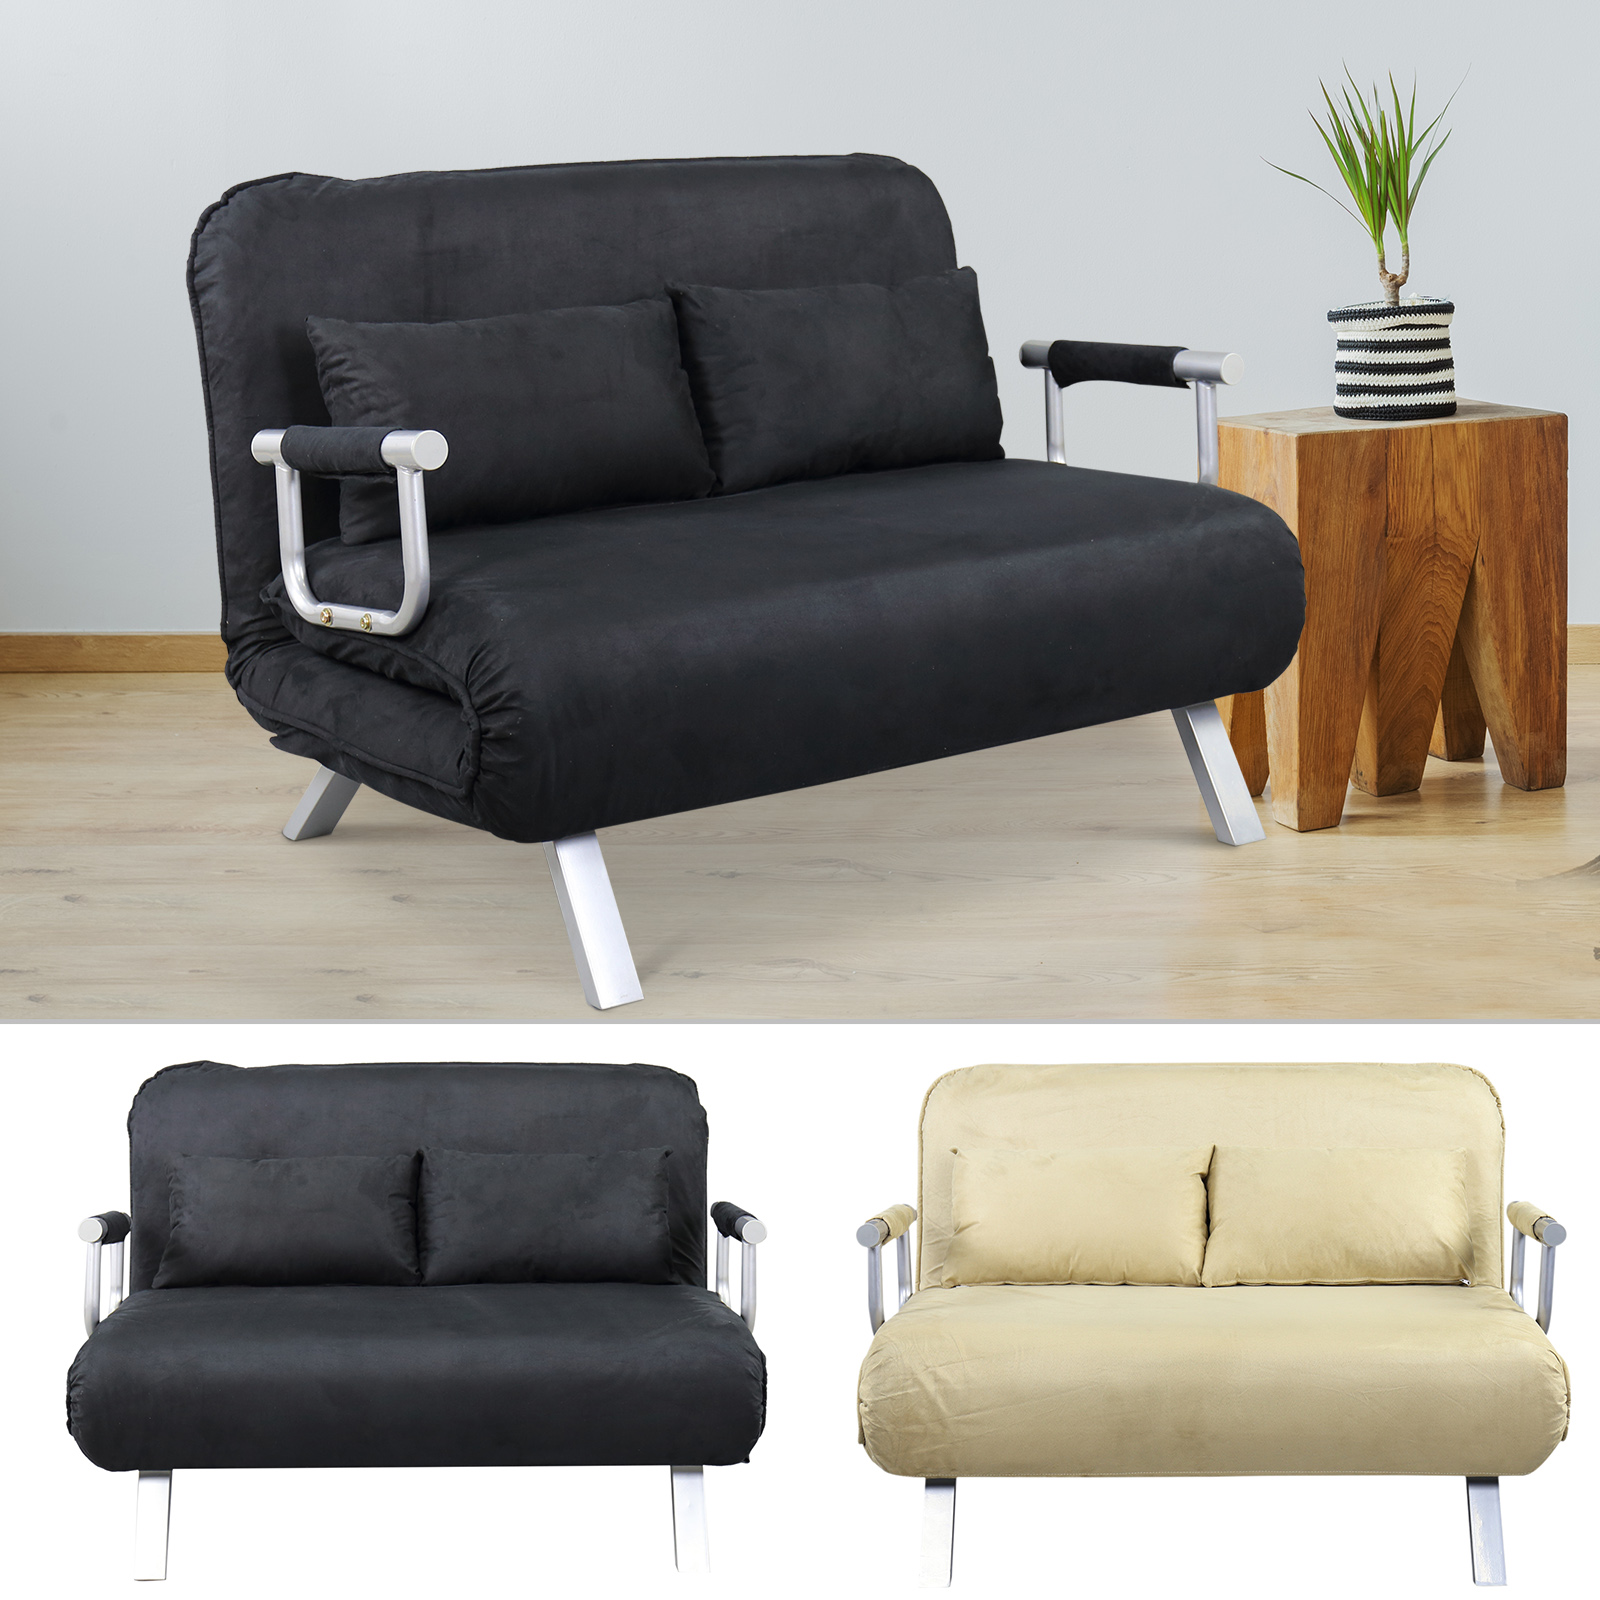 Details about Full Size Convertible Sofa Sleeper Bed Lounger Chair Faux  Suede Cover w/ Pillow